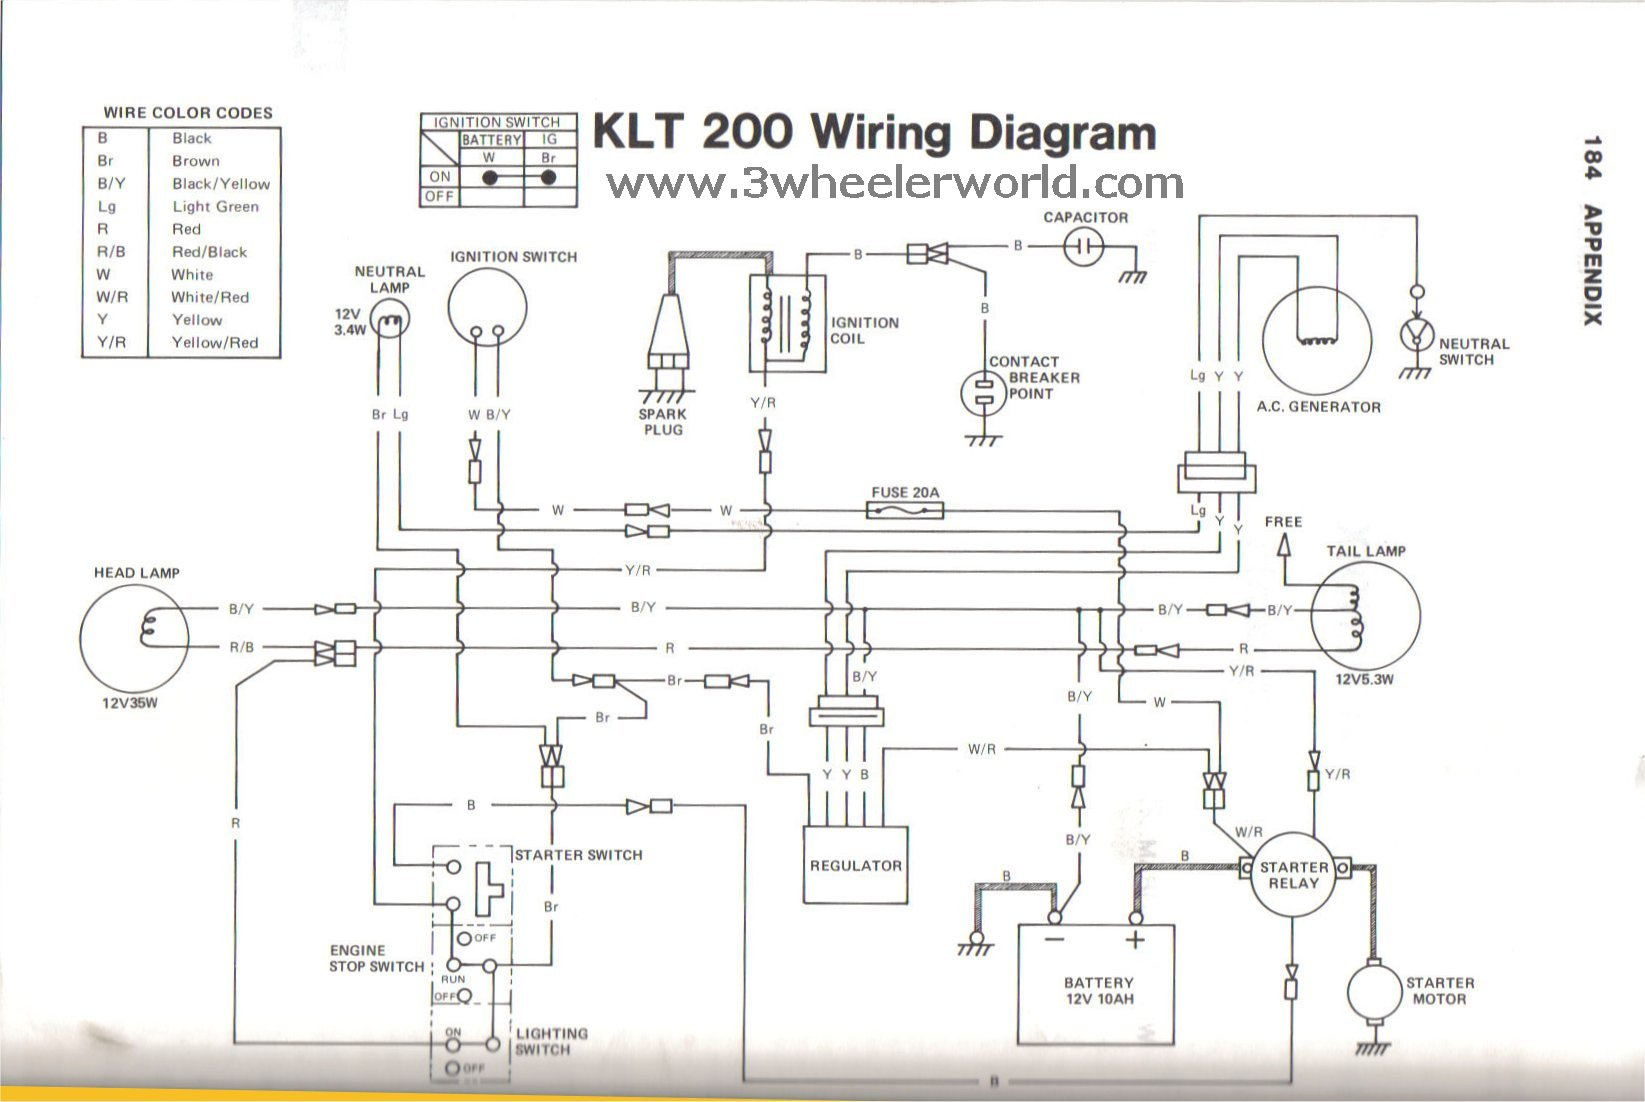 3 Wheeler World Tech Help Kawasaki Wiring Diagrams Kawasaki KLT 200 Wiring  Diagram Klt 250 Wiring Diagram